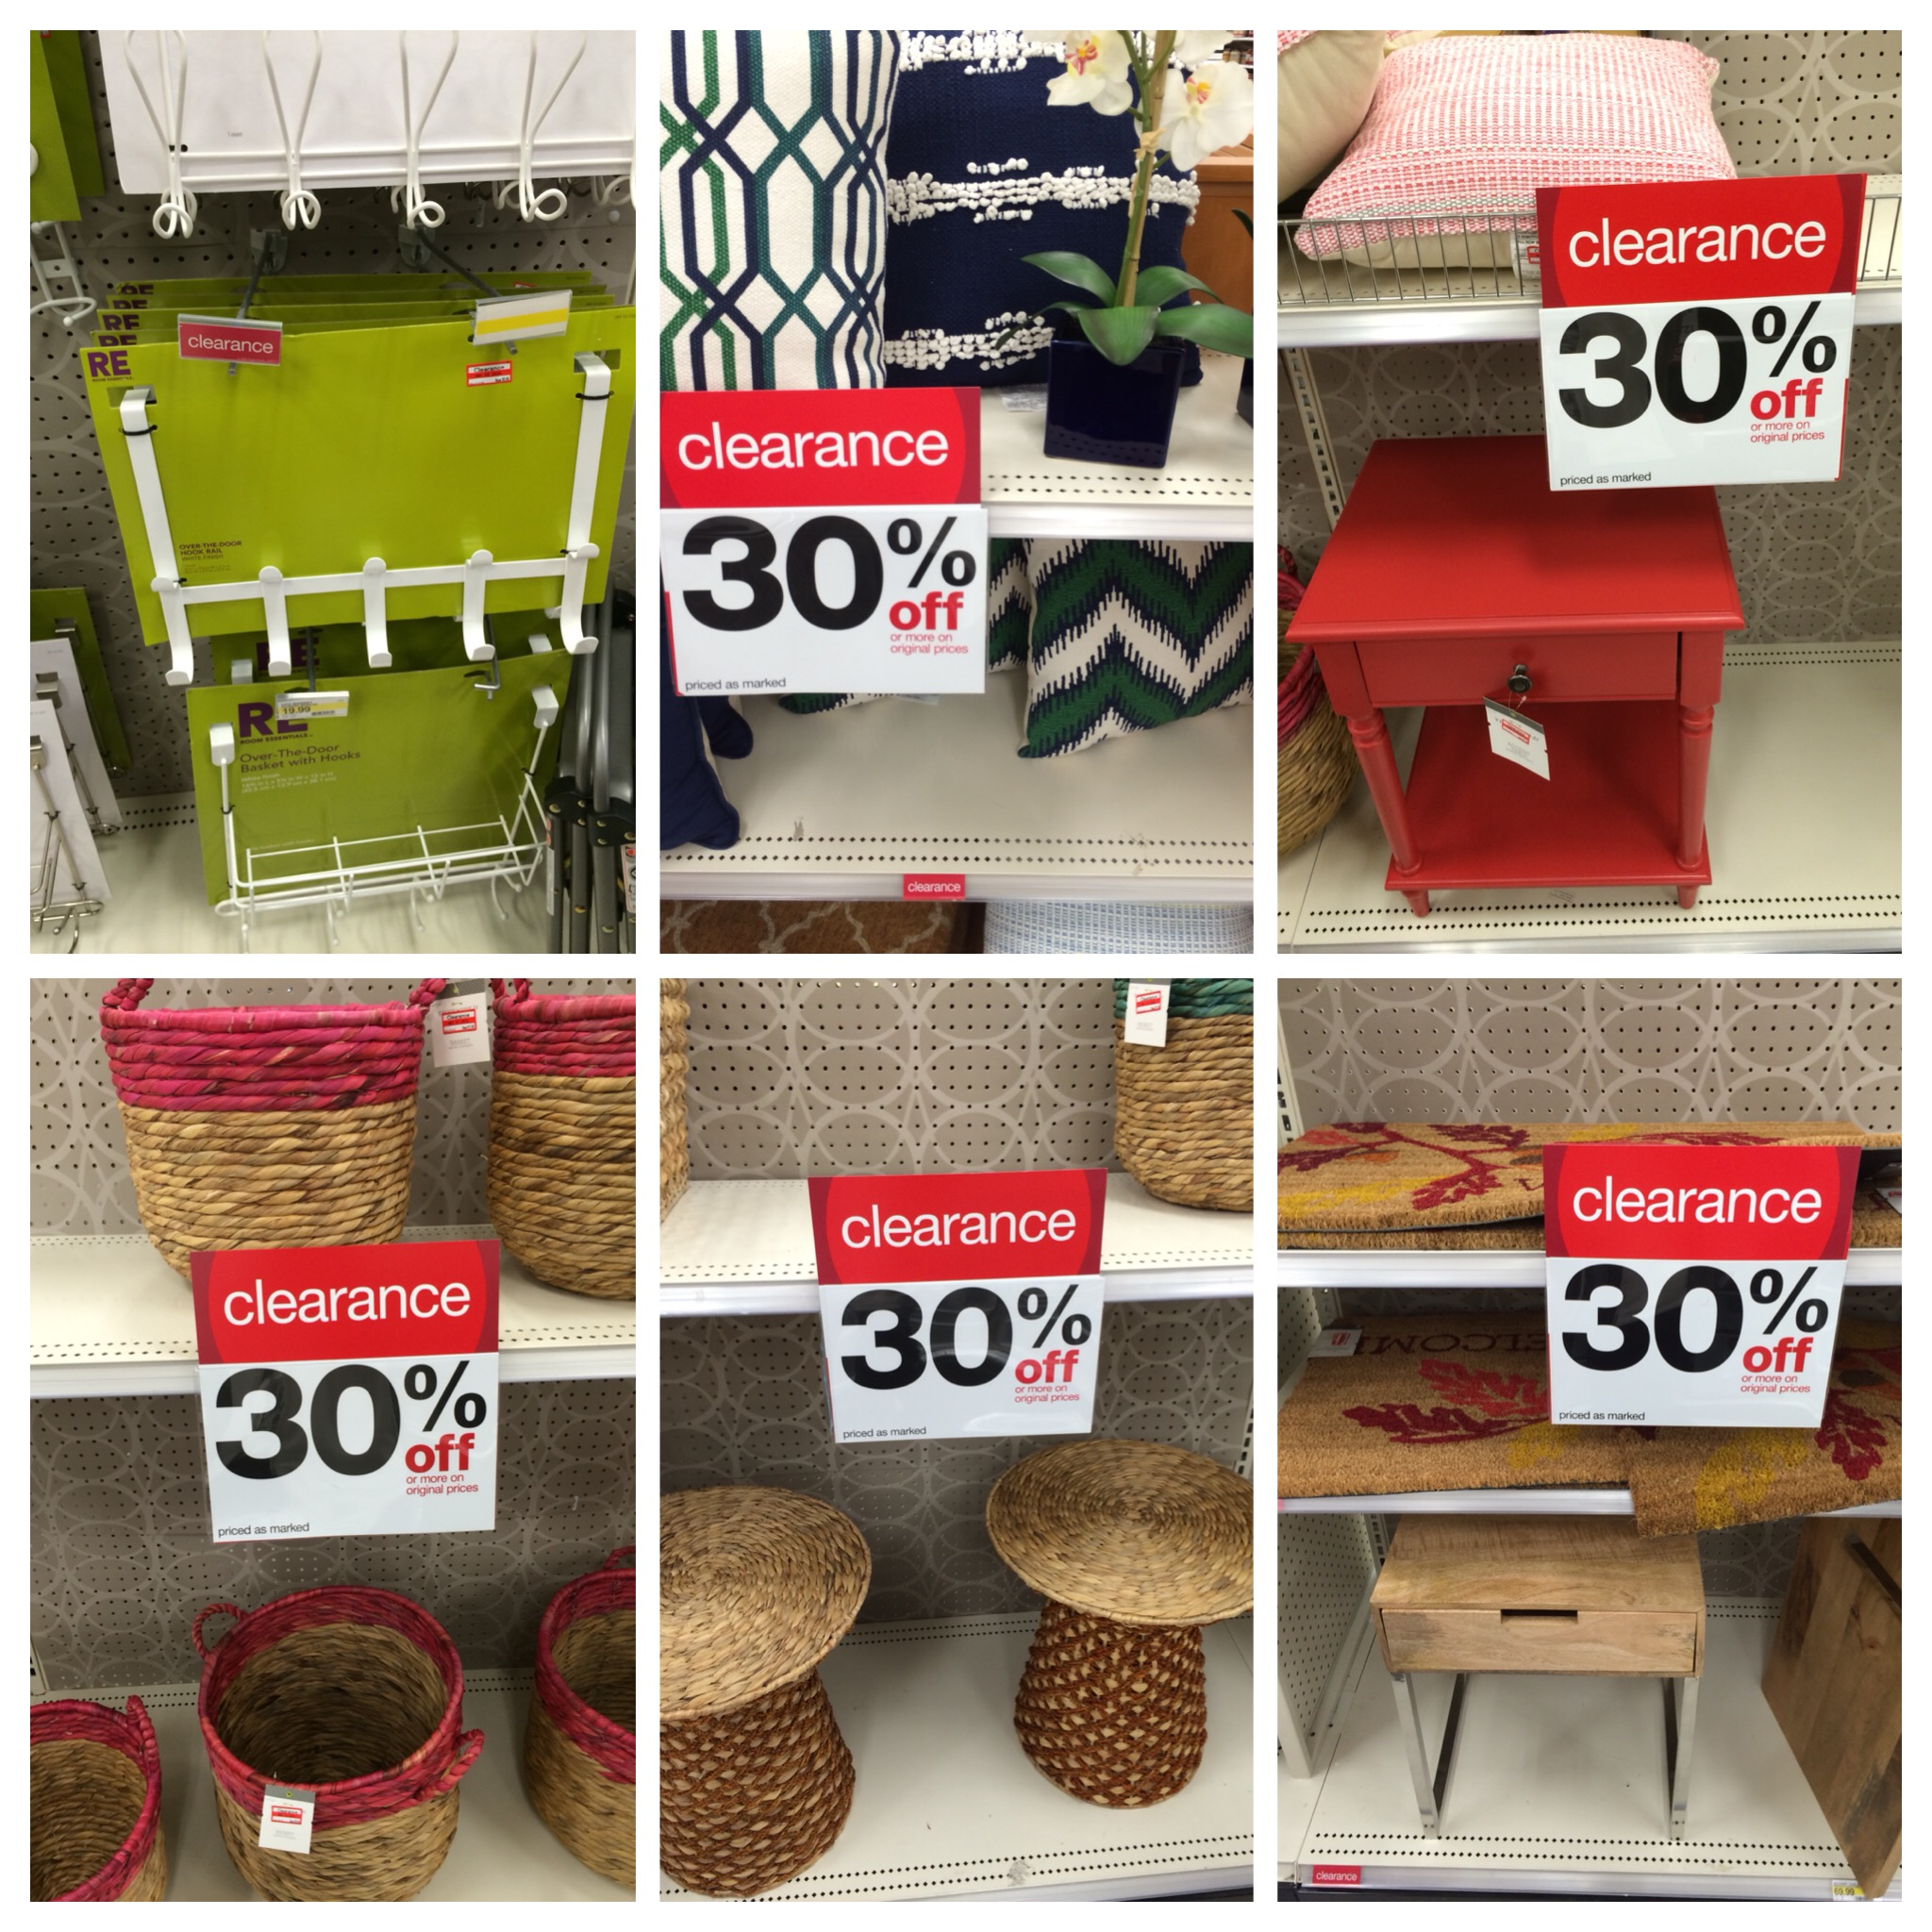 Target Clearance  Home Decor  Baskets  Pillows   More   Passionate     Target Clearance  Home Decor  Baskets  Pillows   More